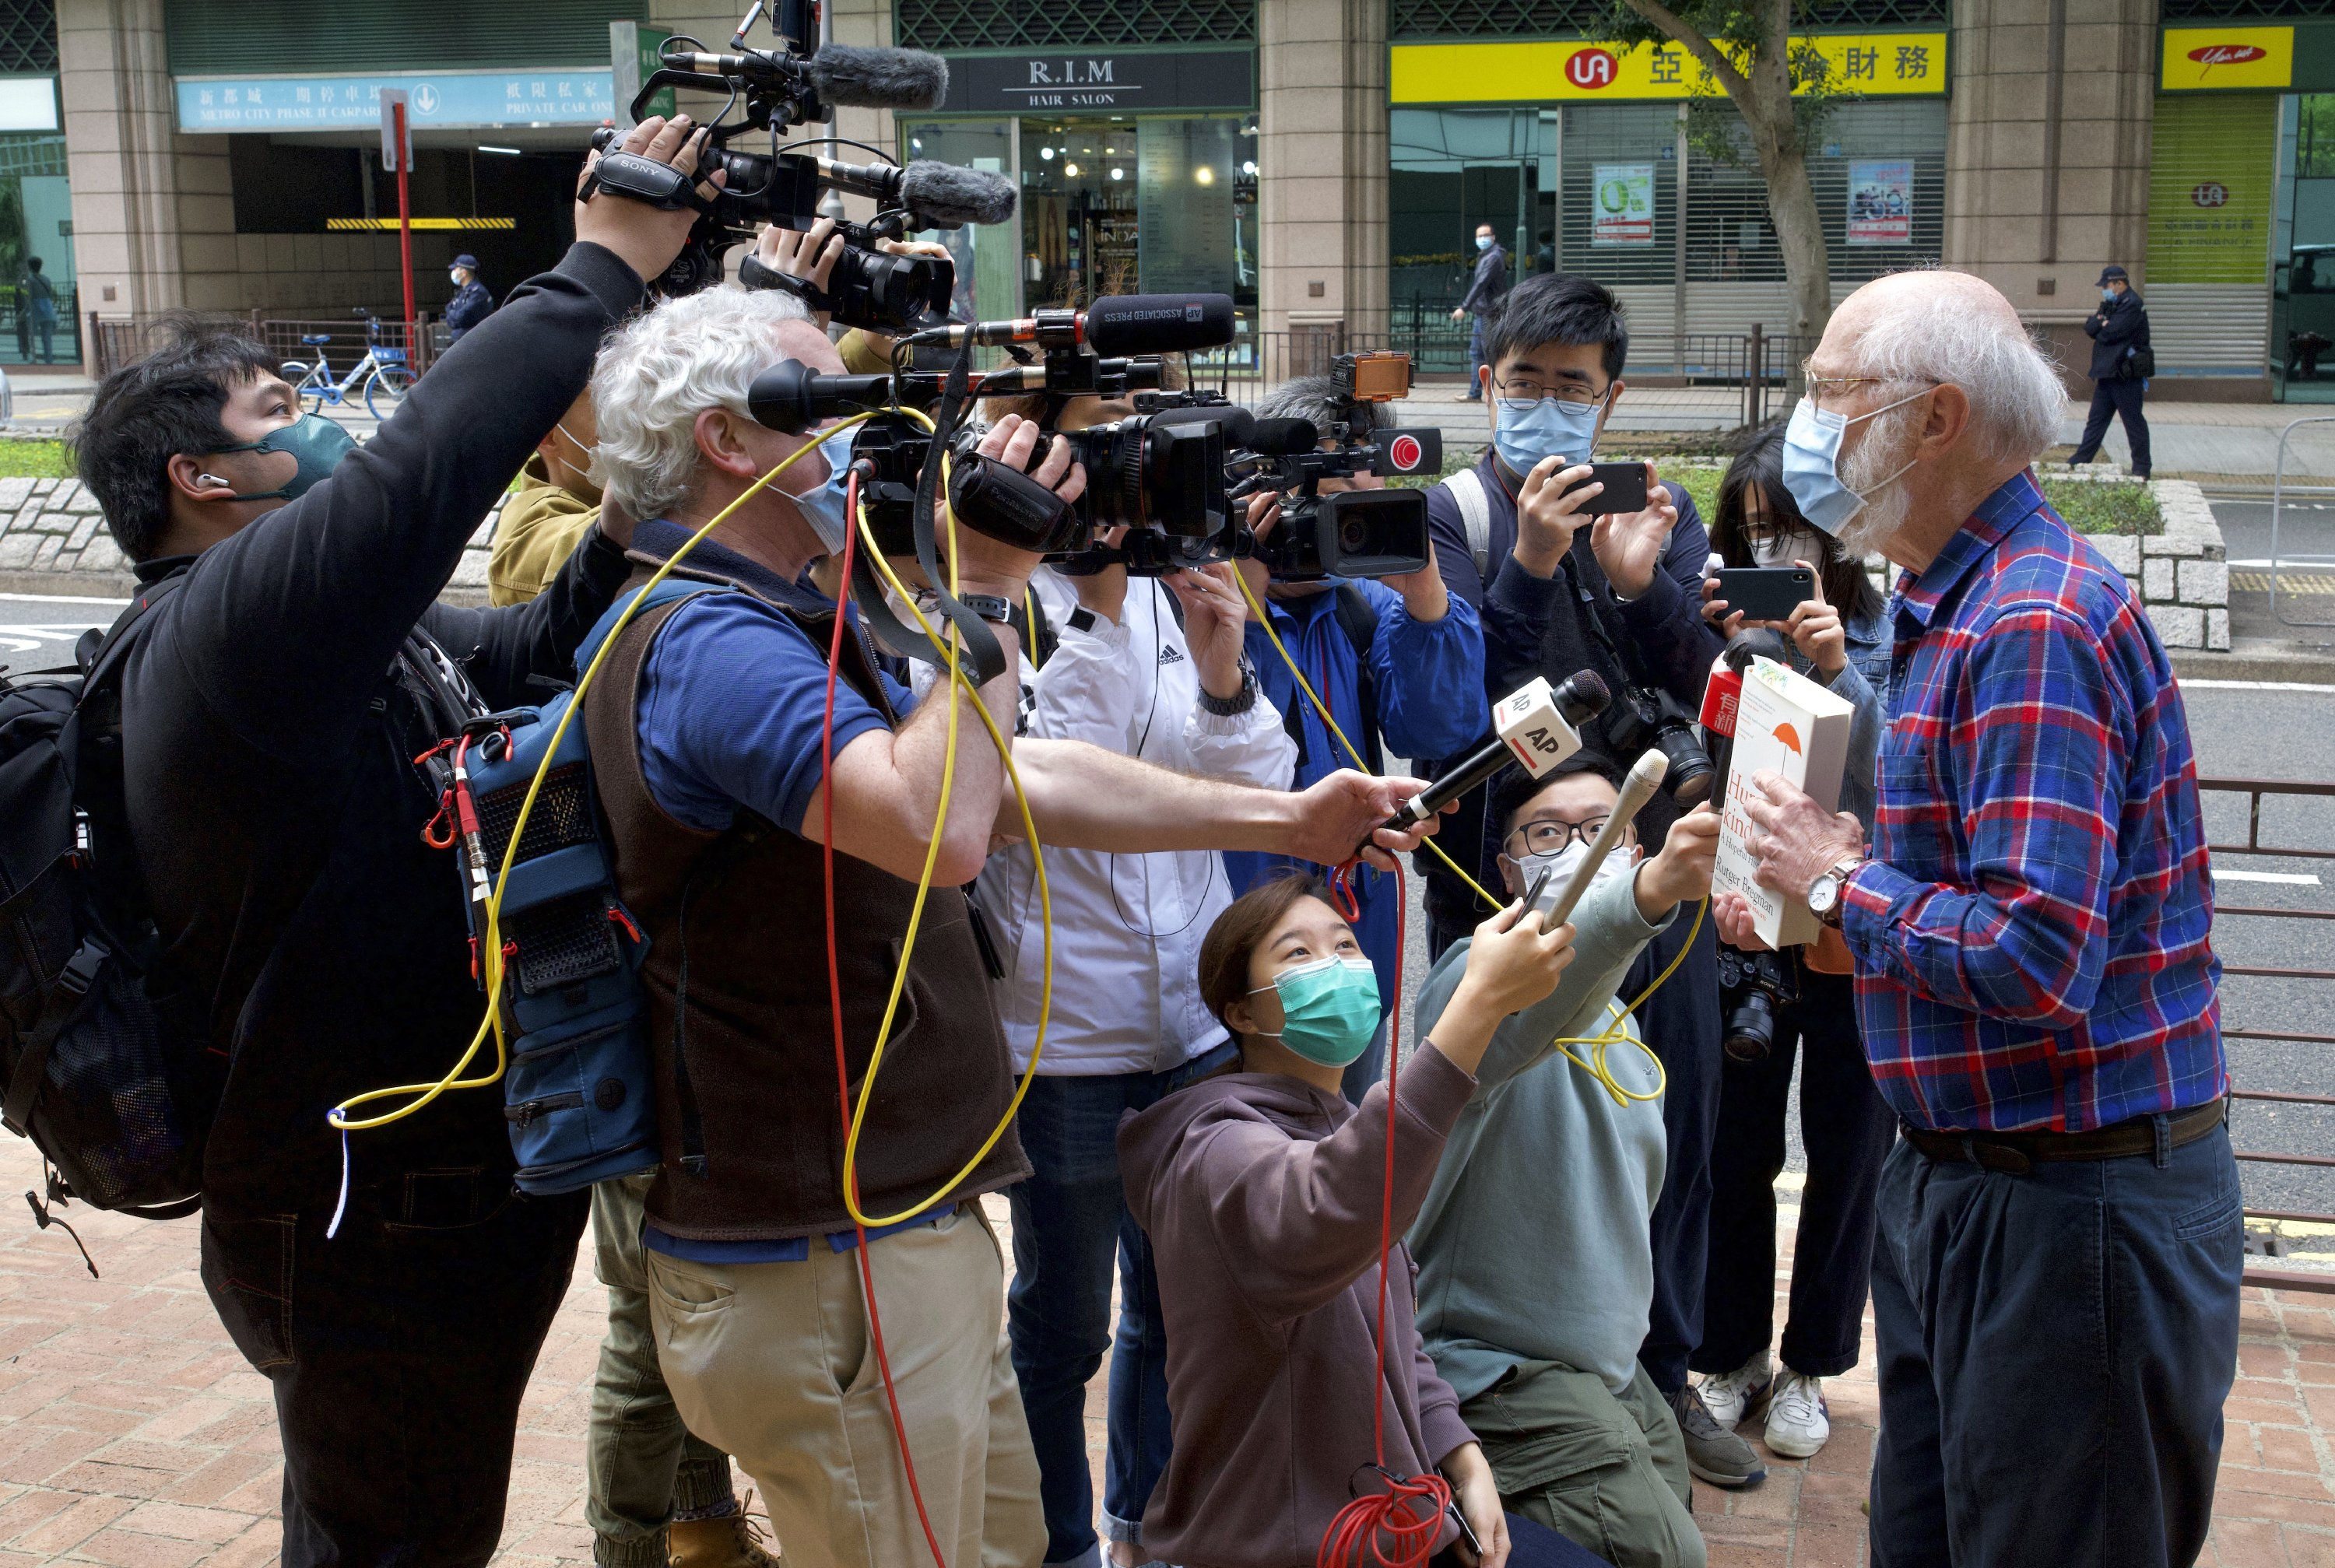 Hong Kong detains 47 activists on subversion charges - The Associated Press